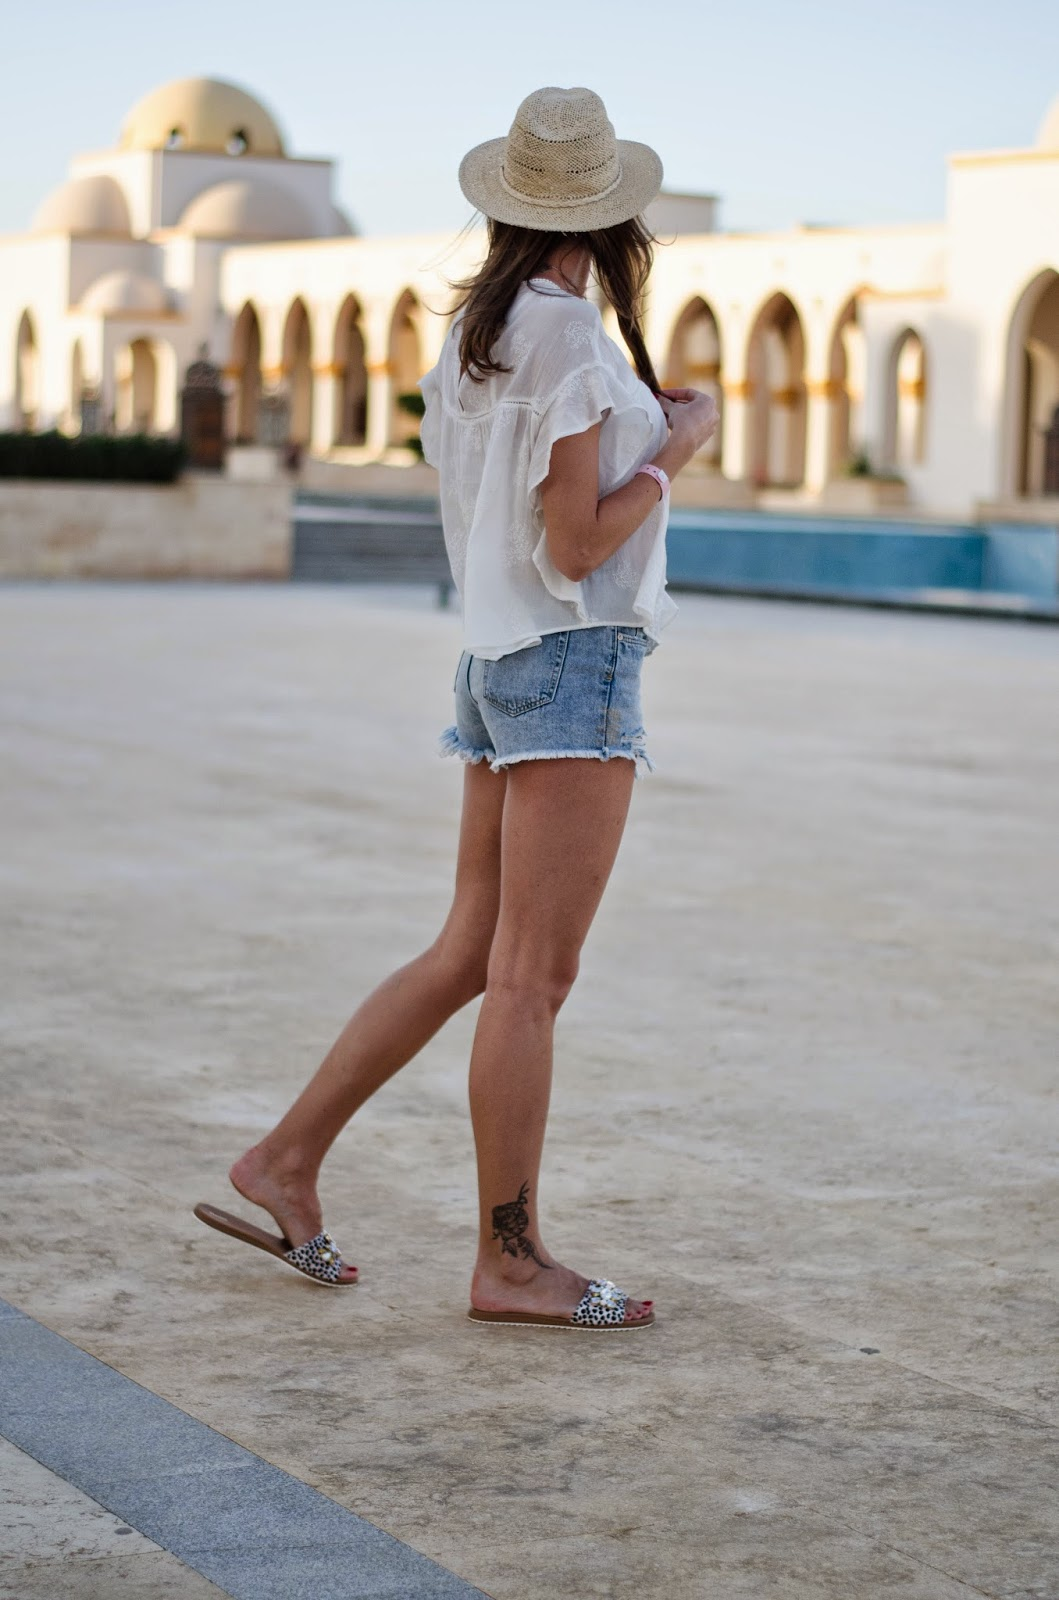 kristjaana mere sahl hasheesh white top blue jeans summer outfit